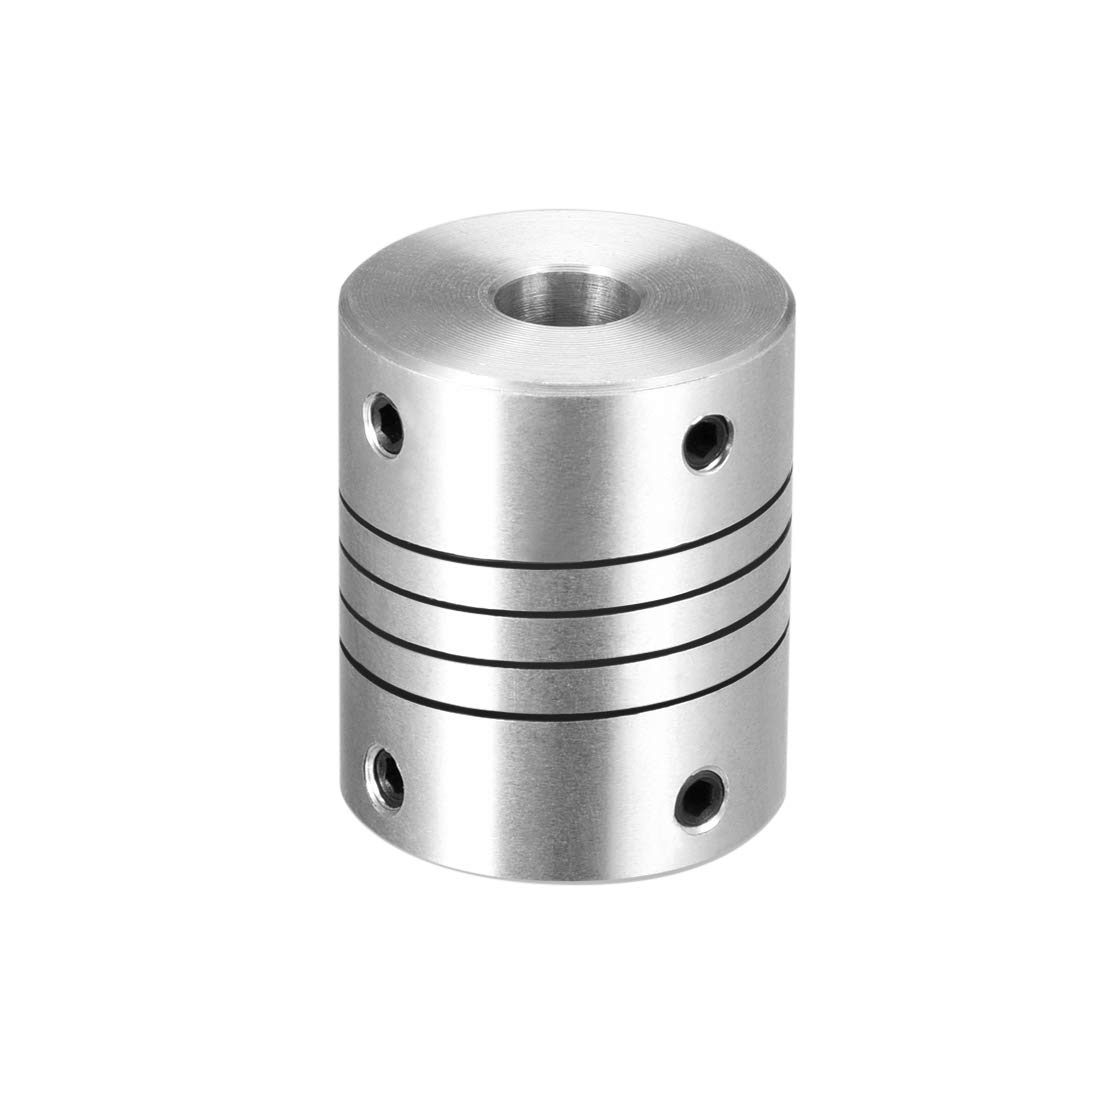 uxcell 8mm to 8mm Stainless Steel Shaft Coupling Flexible Coupler Motor Connector Joint L30xD25 Silver